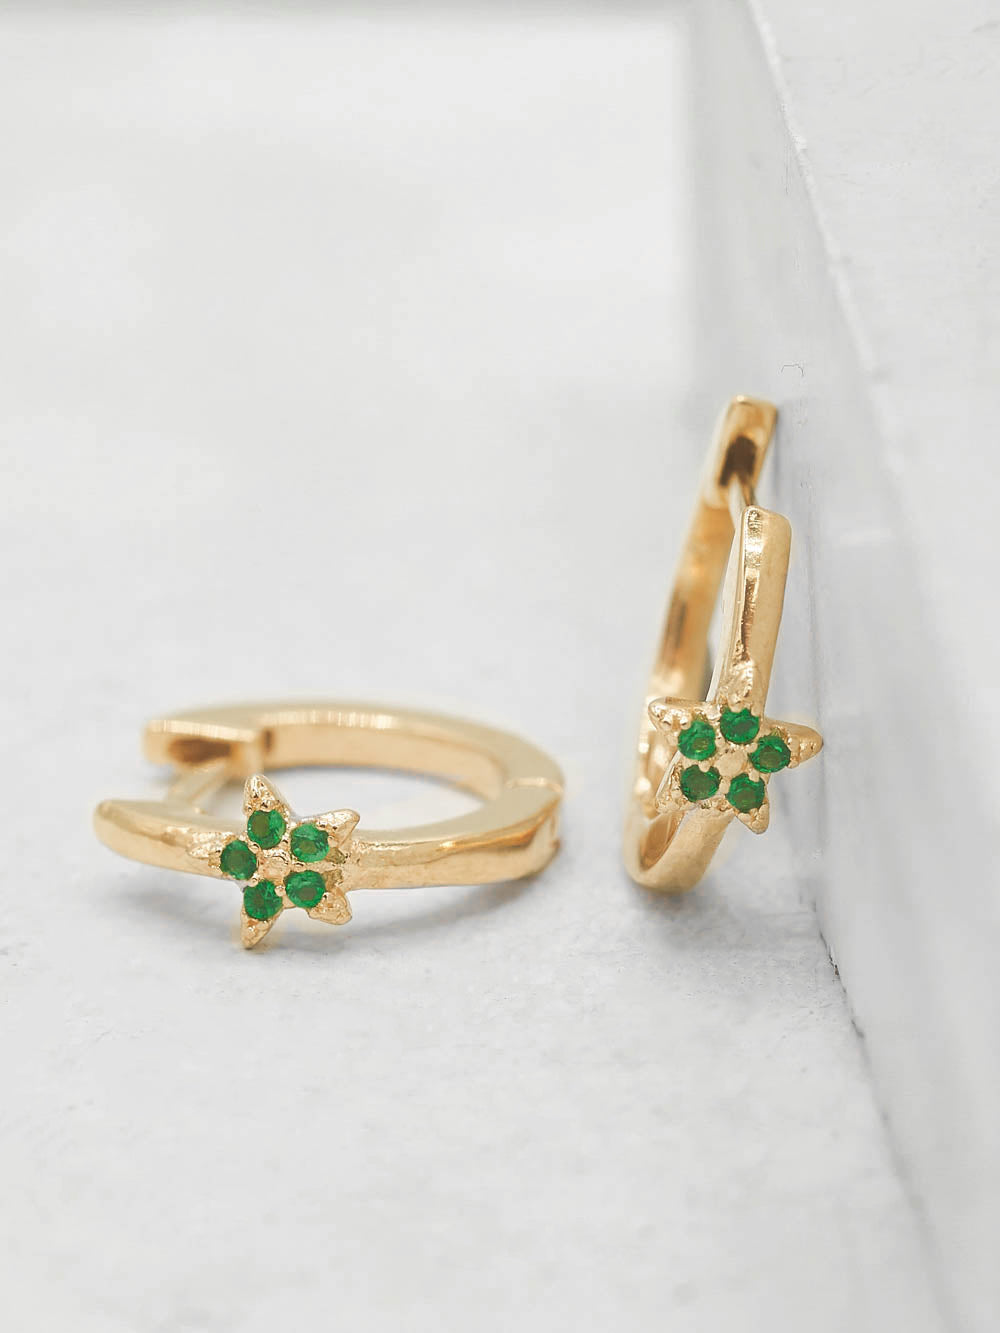 Gold Plated Brass Mini Star with Green Emerald  CZ Cubic Zirconia Hoop Huggies Dainty Earring by The Faint Hearted Jewelry